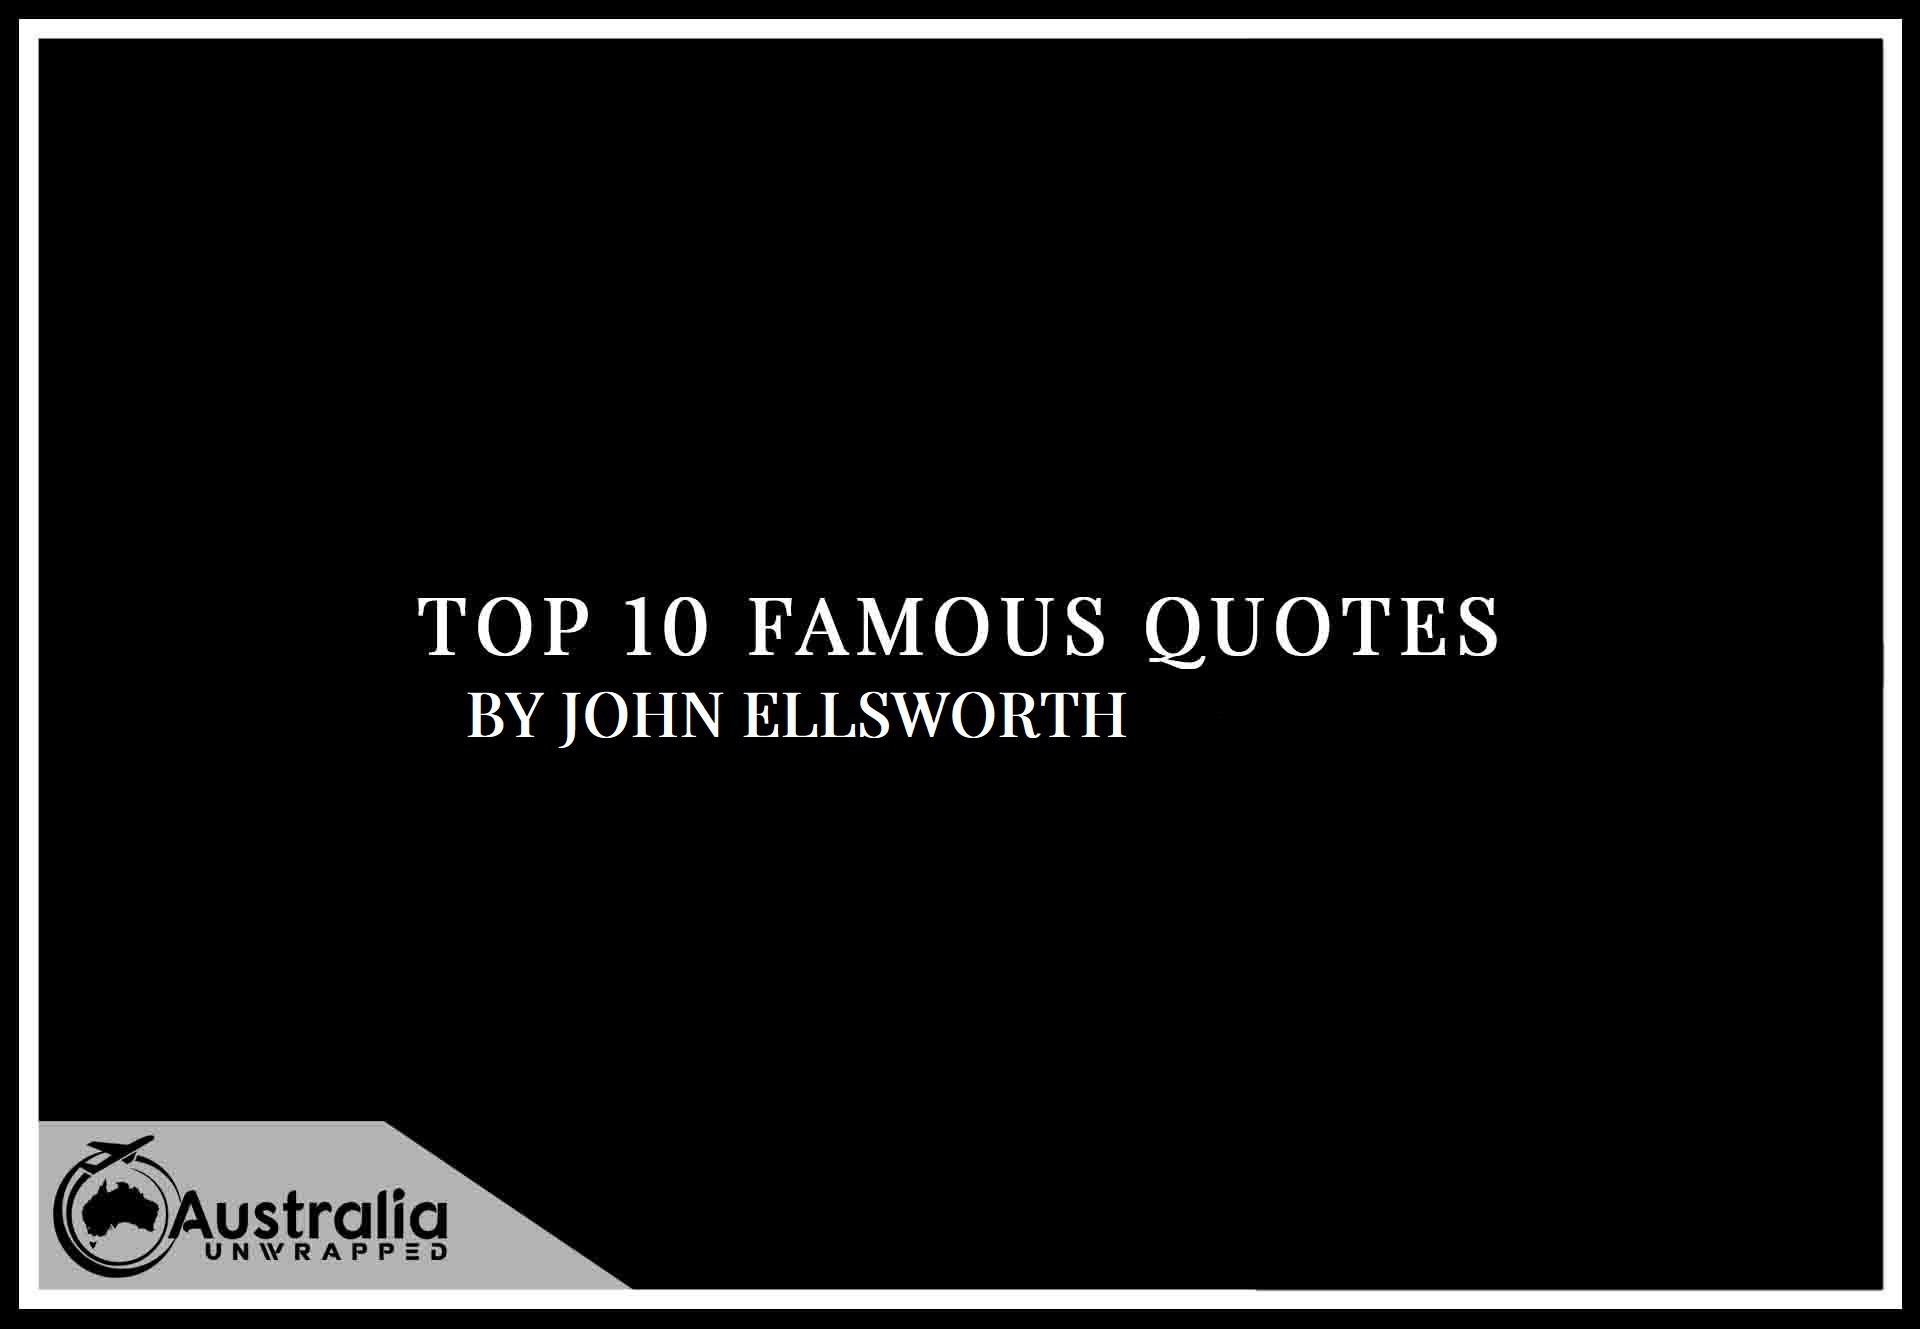 Top 10 Famous Quotes by Author John Ellsworth